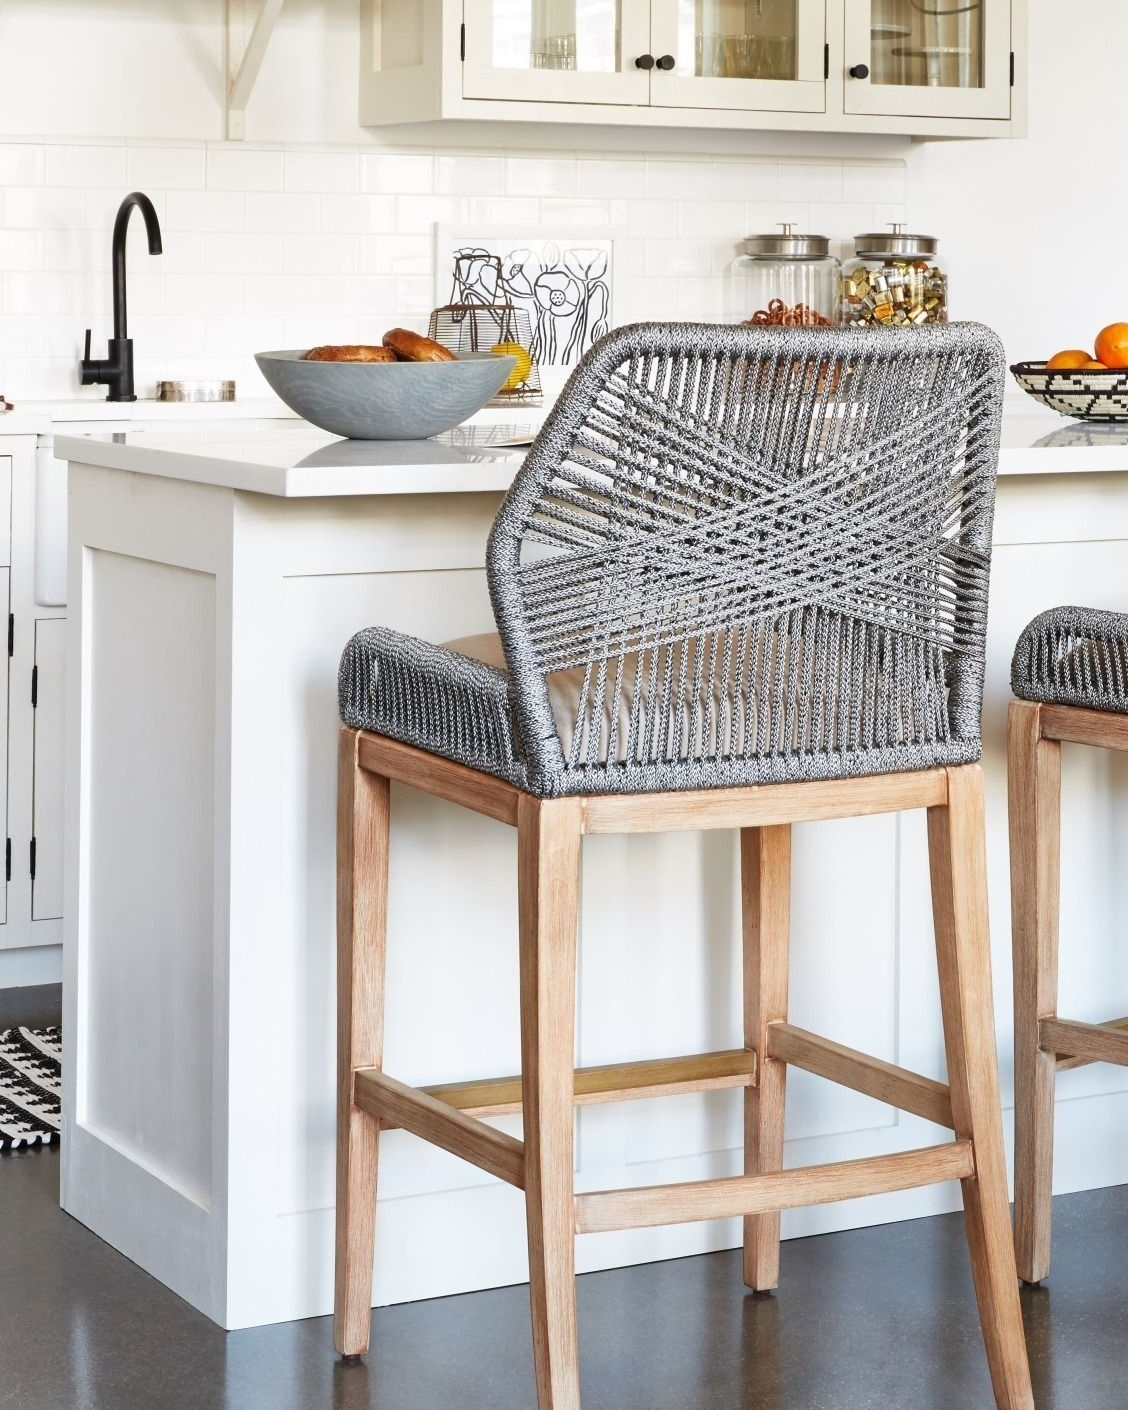 Laurent 7 Piece Counter Sets With Upholstered Counterstools For Latest These Woven Rope Counter Stools Are Such A Fun, Unexpected Kitchen (View 14 of 25)